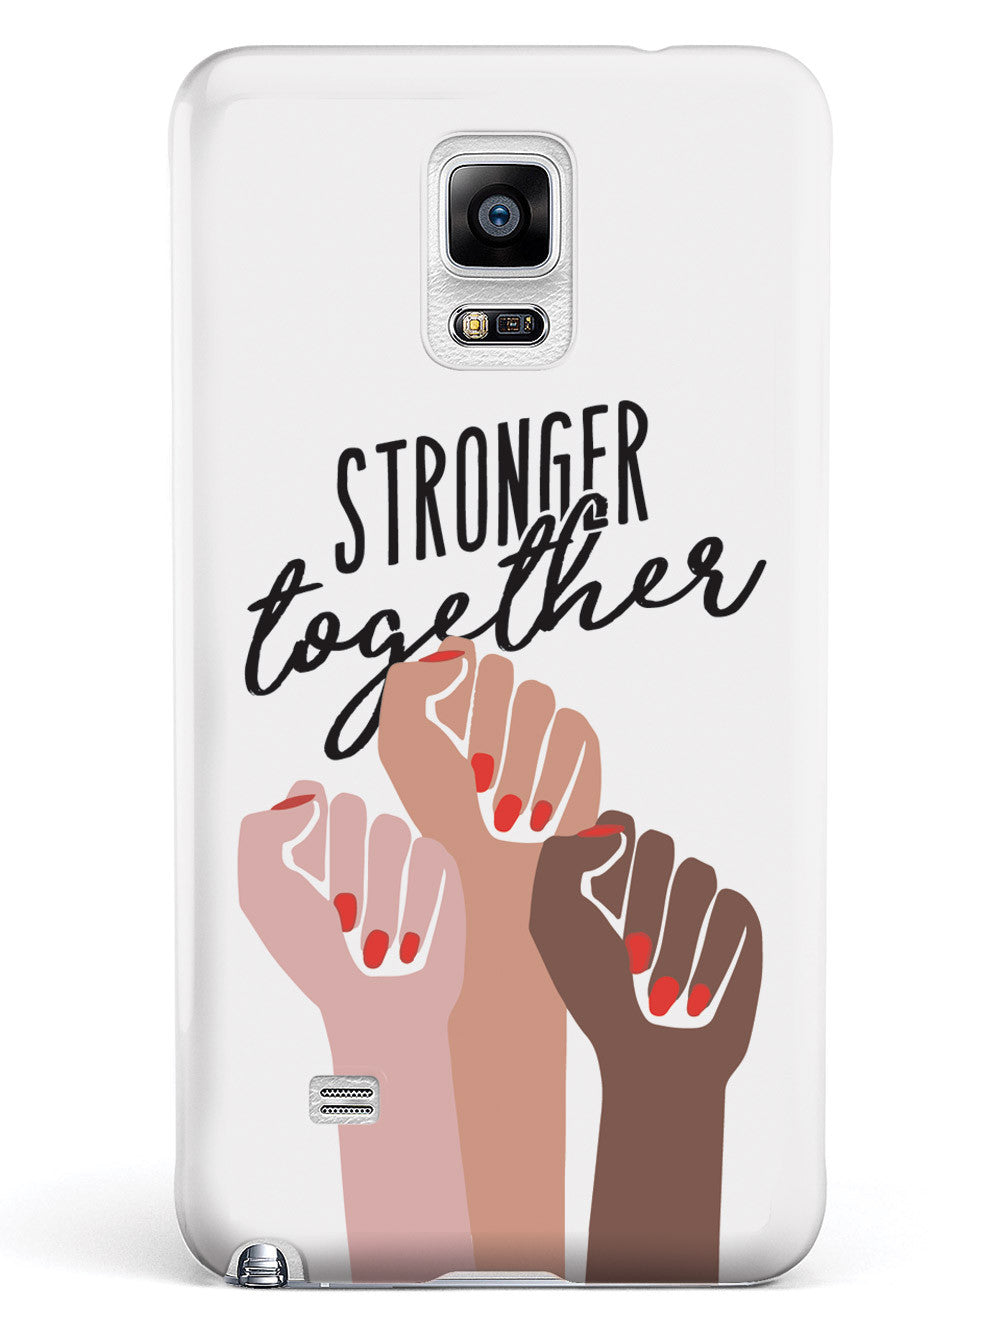 Stronger Together - Women's March Solidarity - White Case